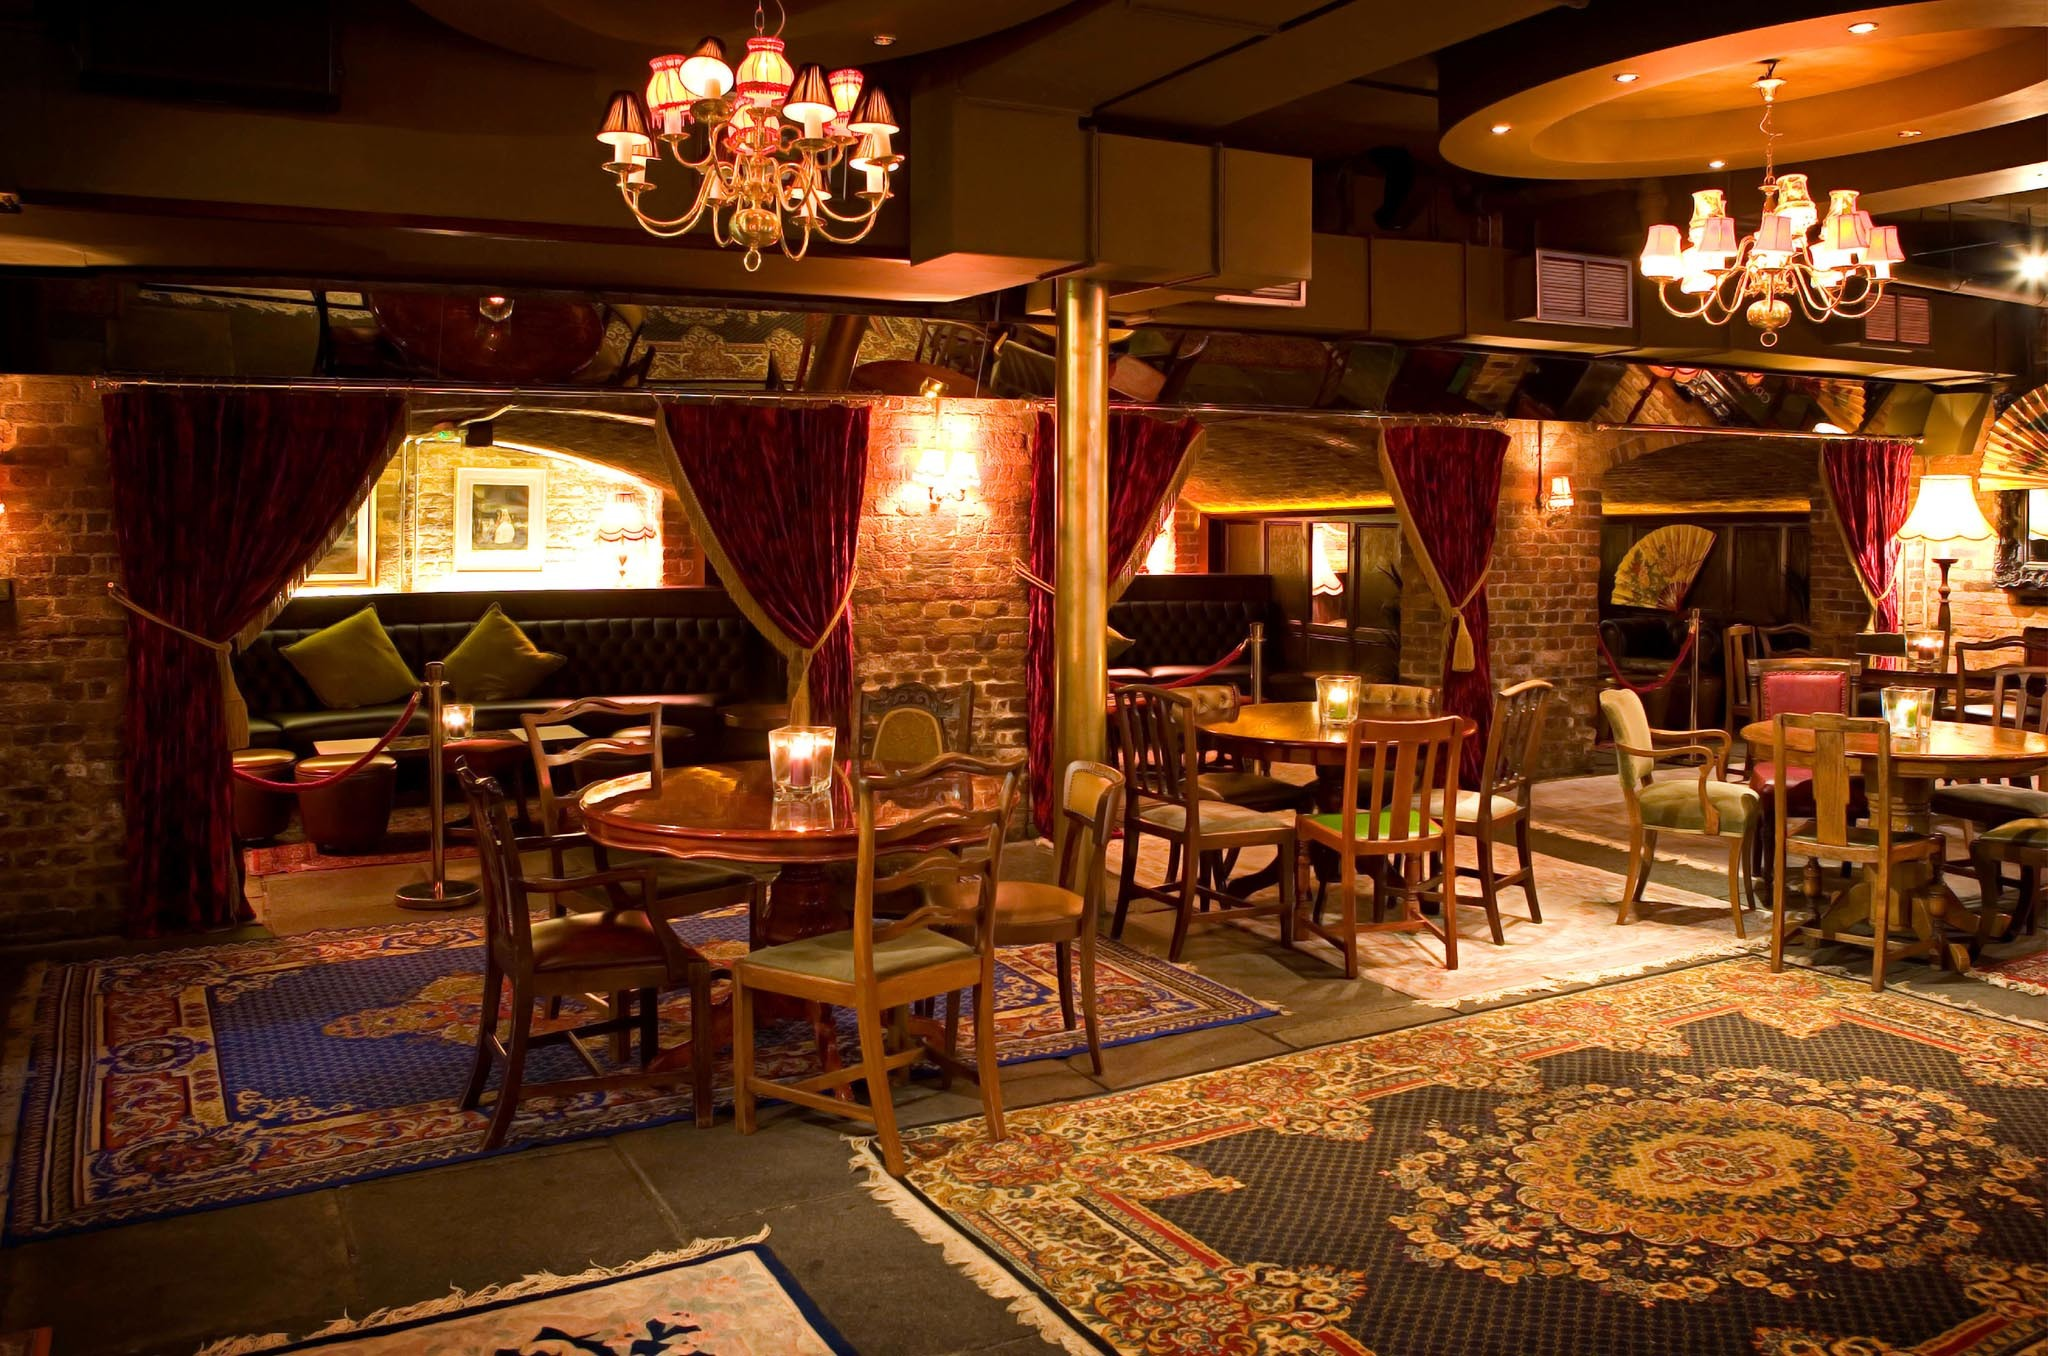 Grand Union Farringdon Bars And Pubs In Farringdon And